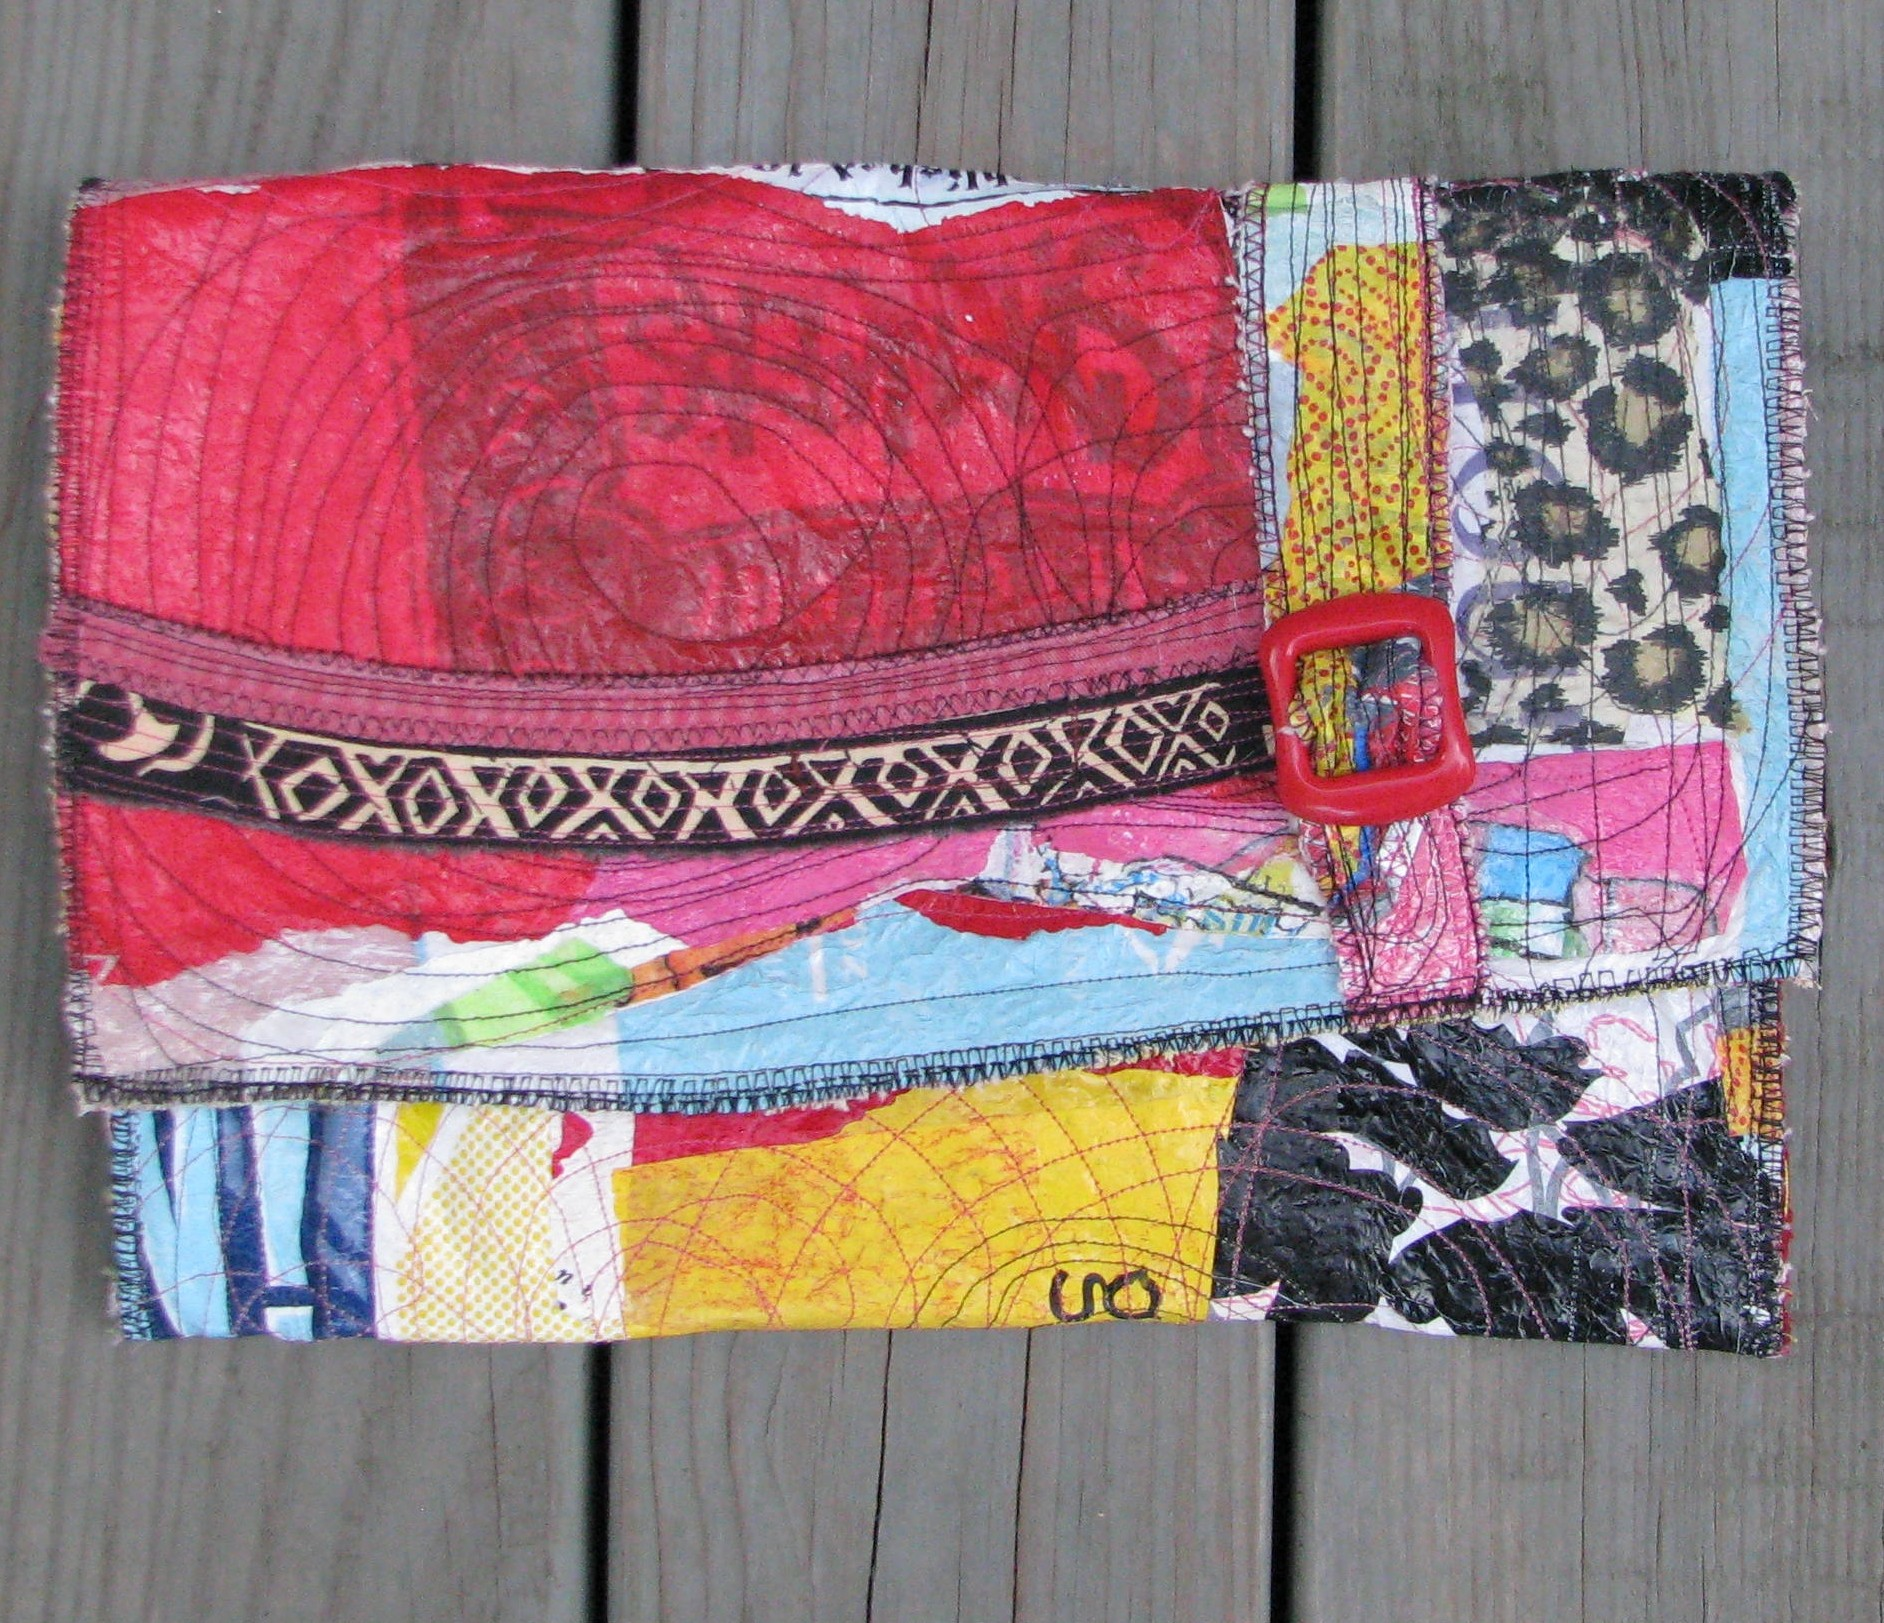 UpCycled Art Projects | u p C y c l e d ART  |Upcycled Art